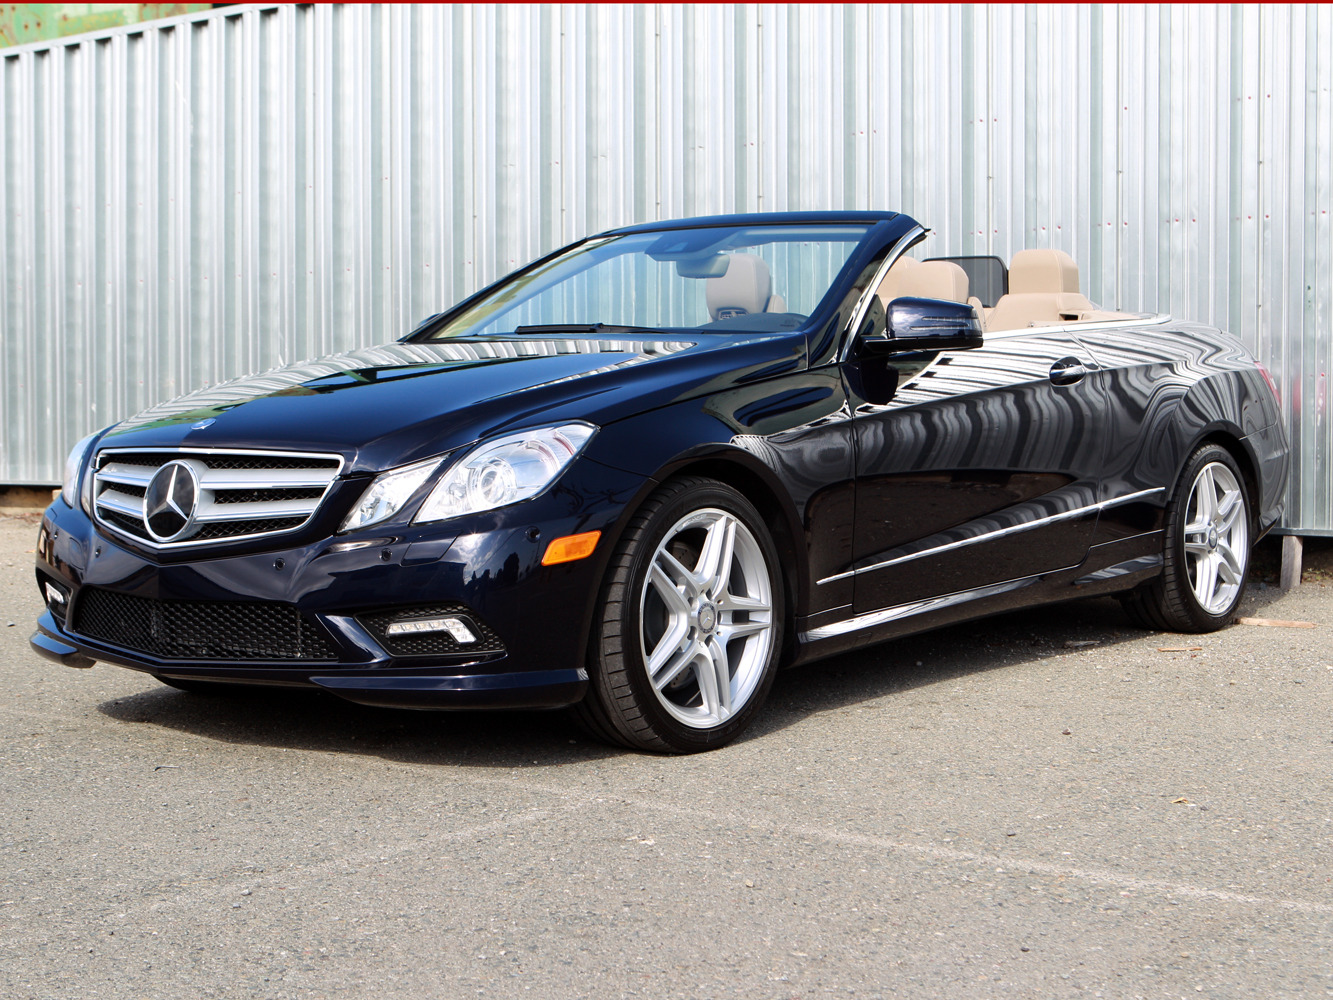 2011 mercedes benz e550 cabriolet review cnet for 2012 mercedes benz e550 coupe review